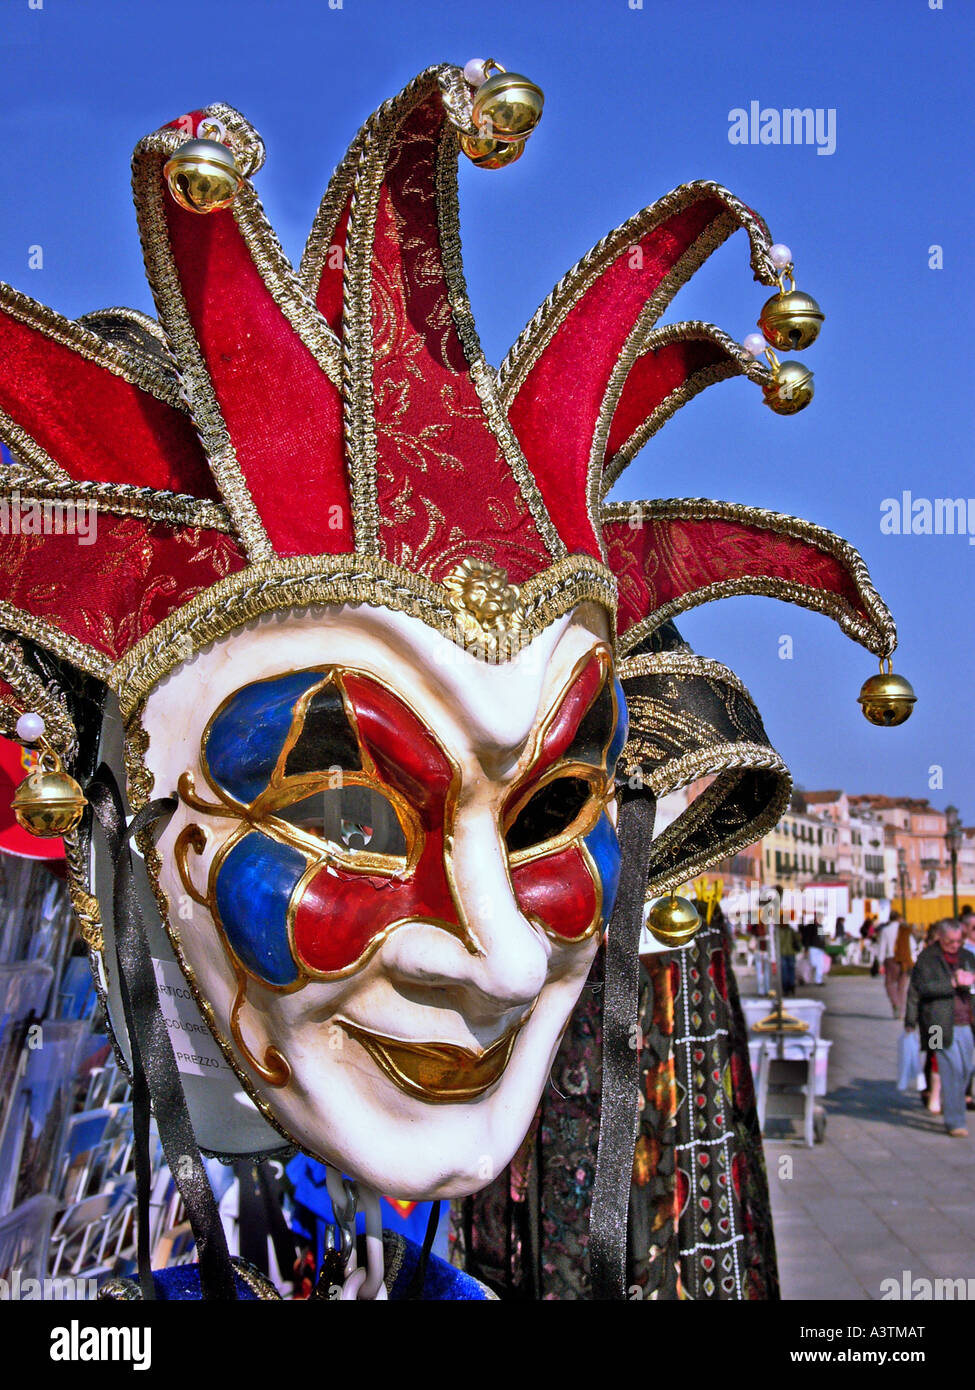 Venetian mask in close up for sale on the quayside in Venice Italy Europe EU - Stock Image